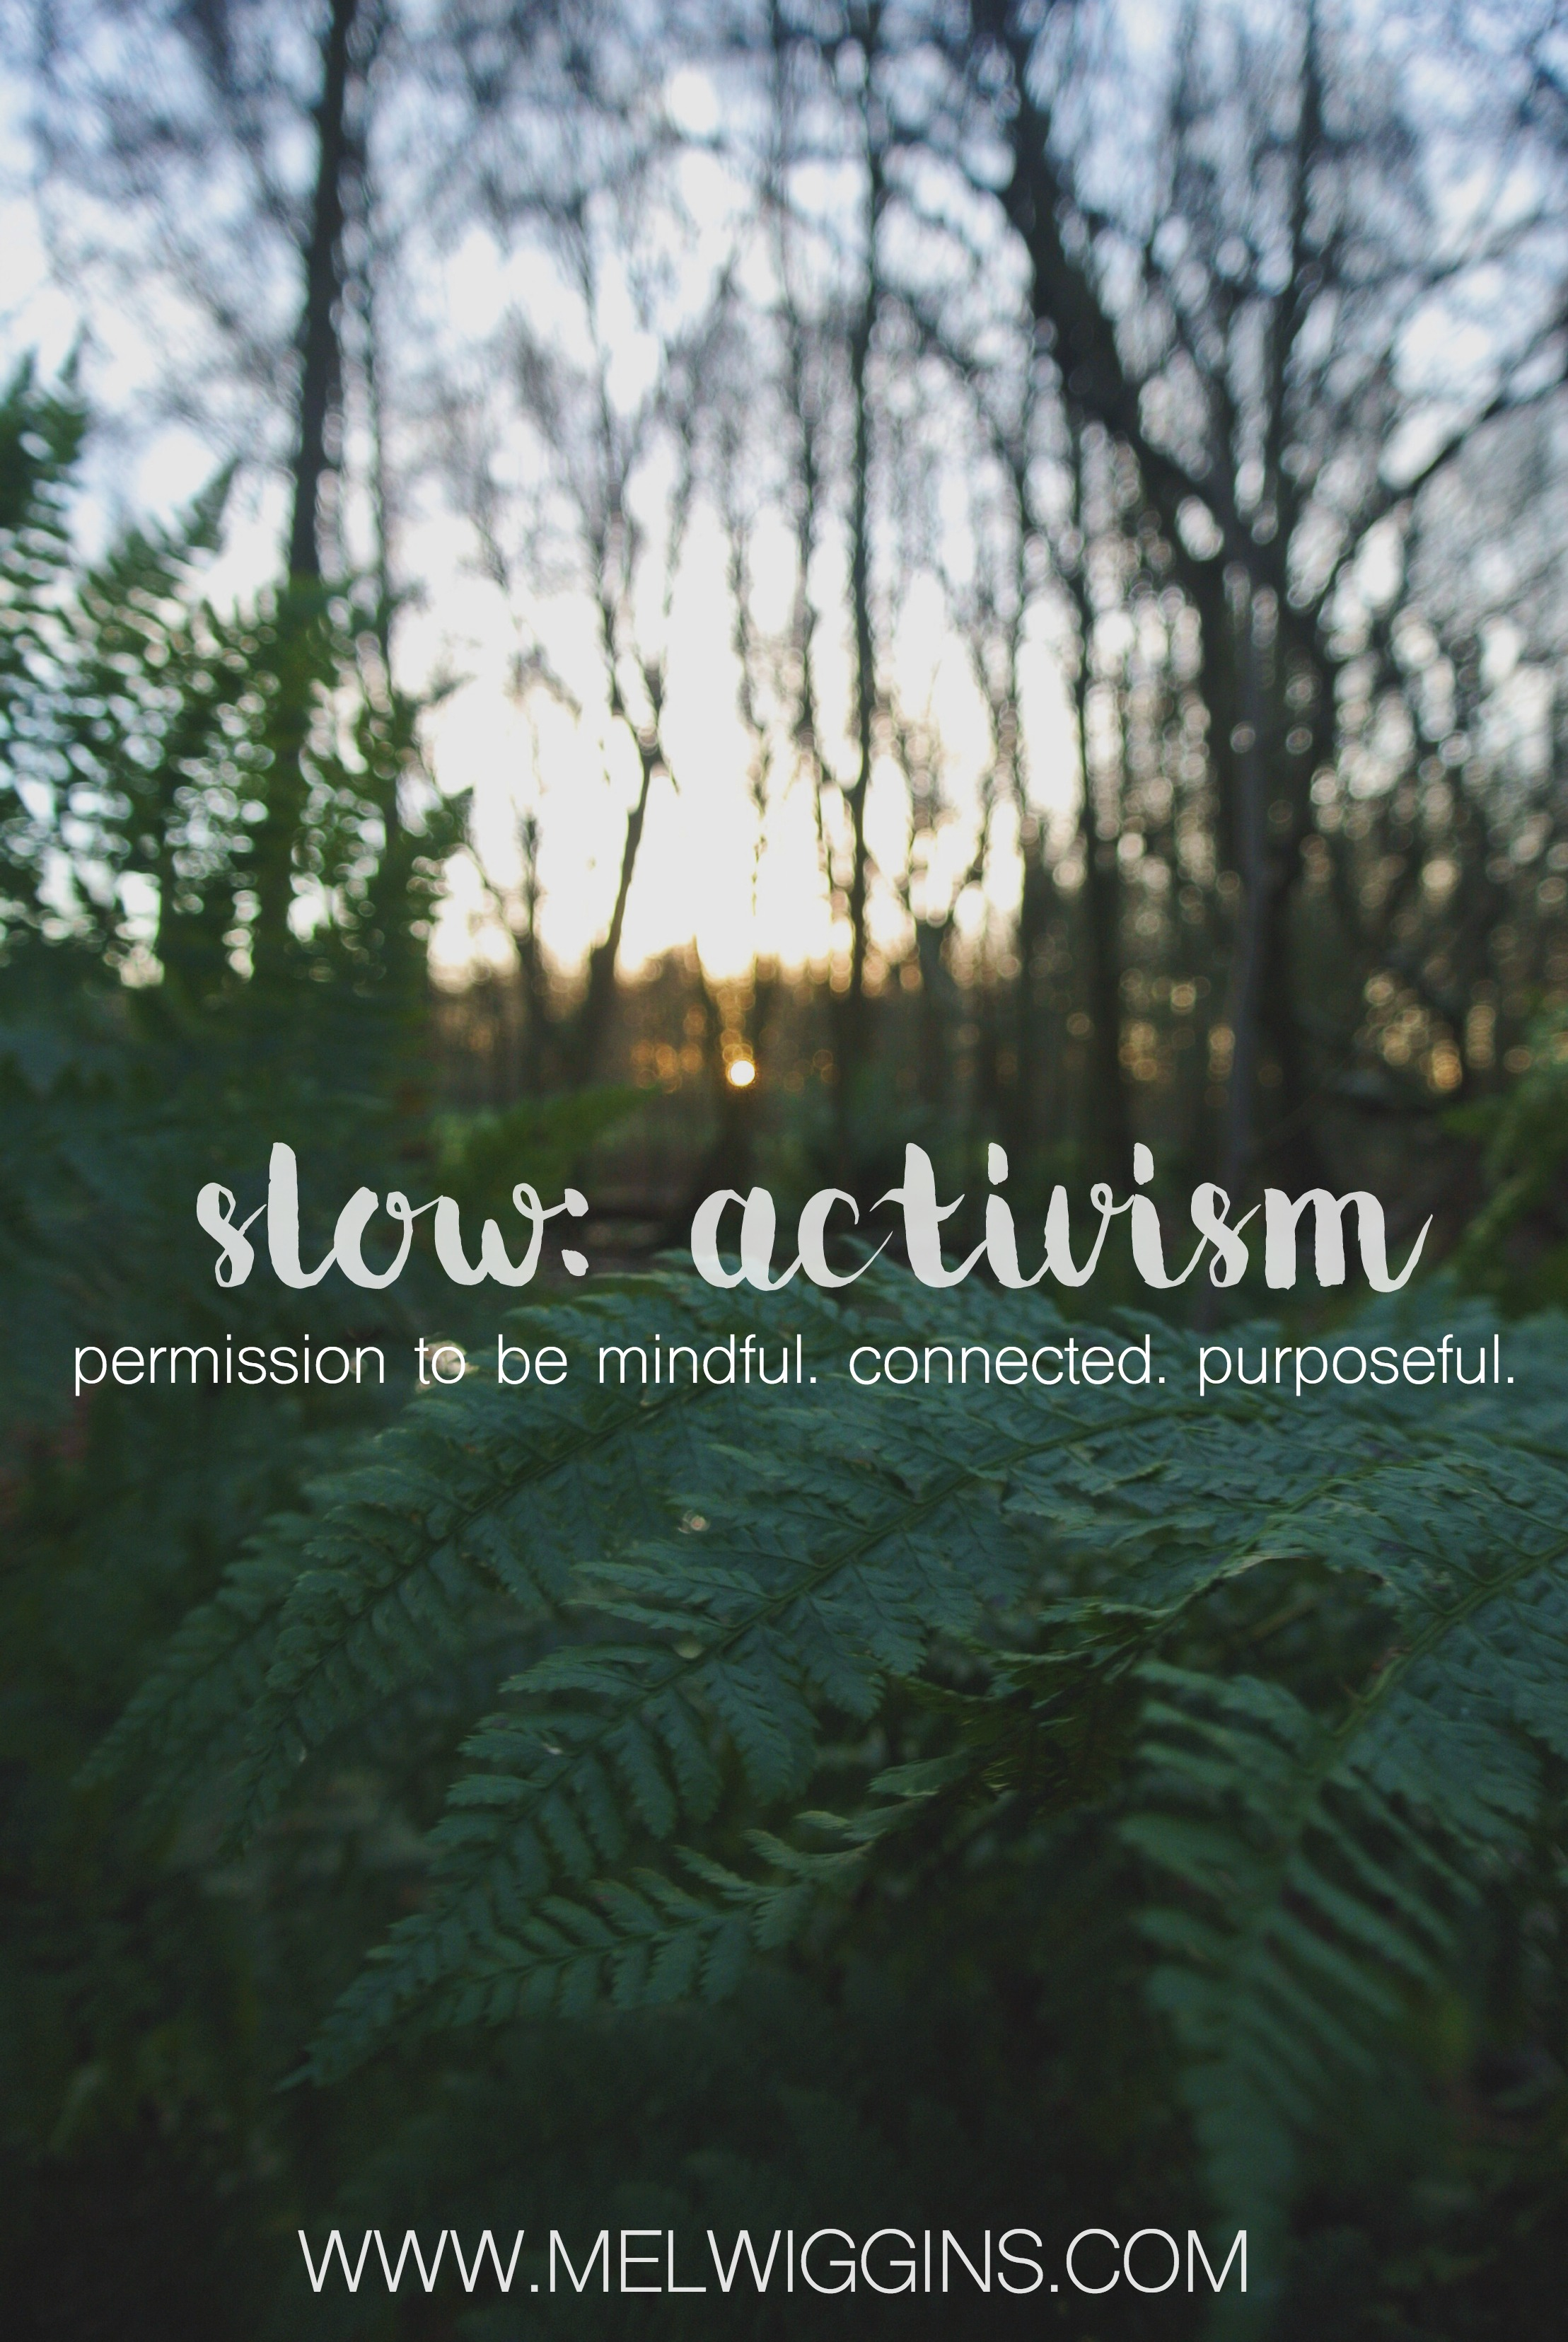 Slow Activism: The key long lasting social change